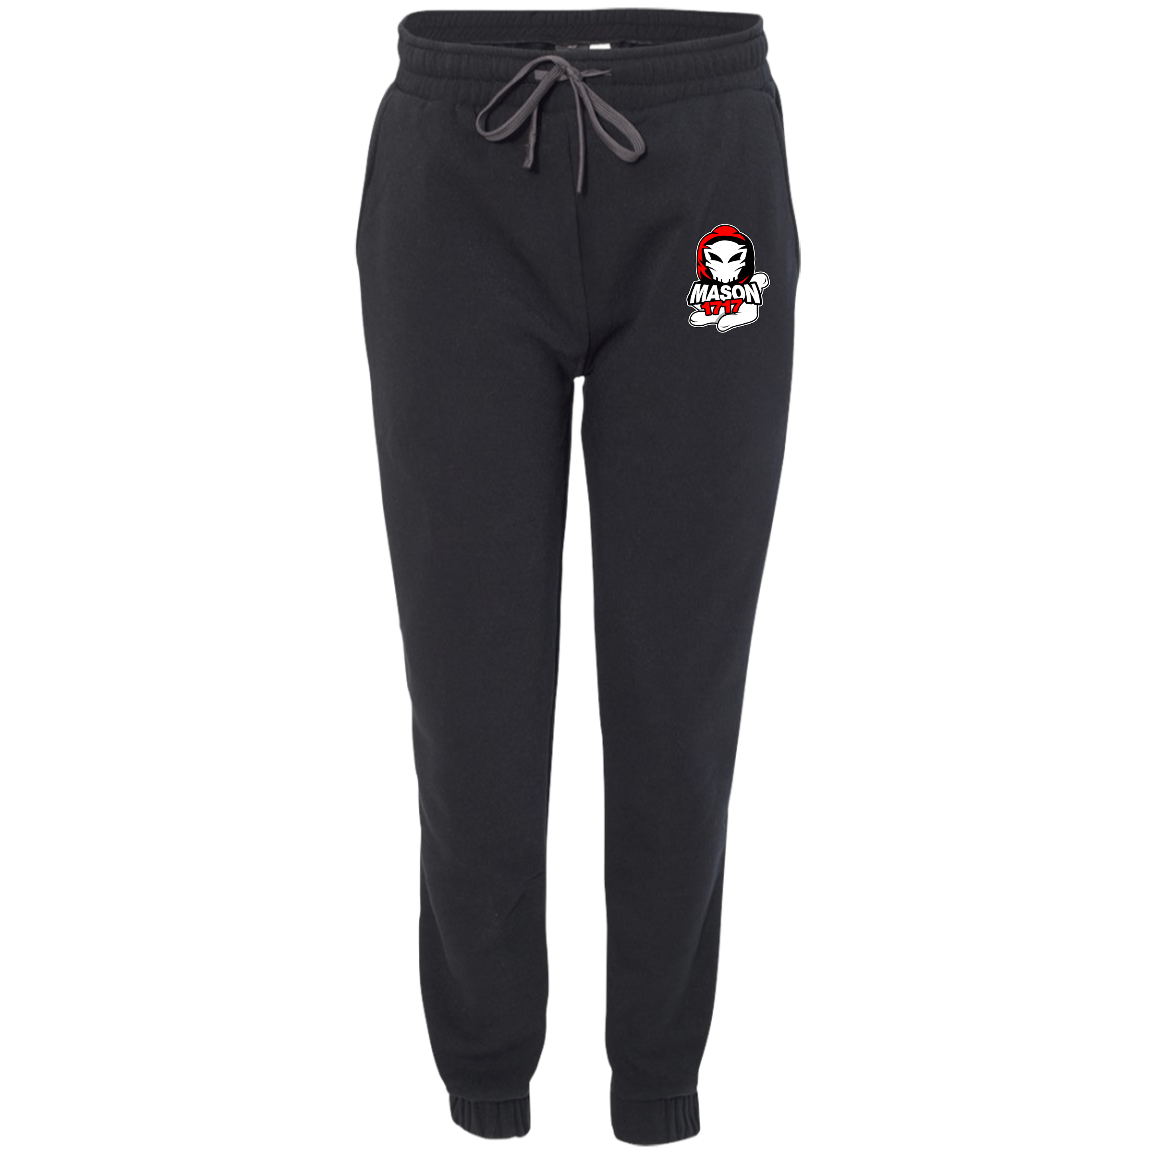 s-m1 FLEECE JOGGER PANTS